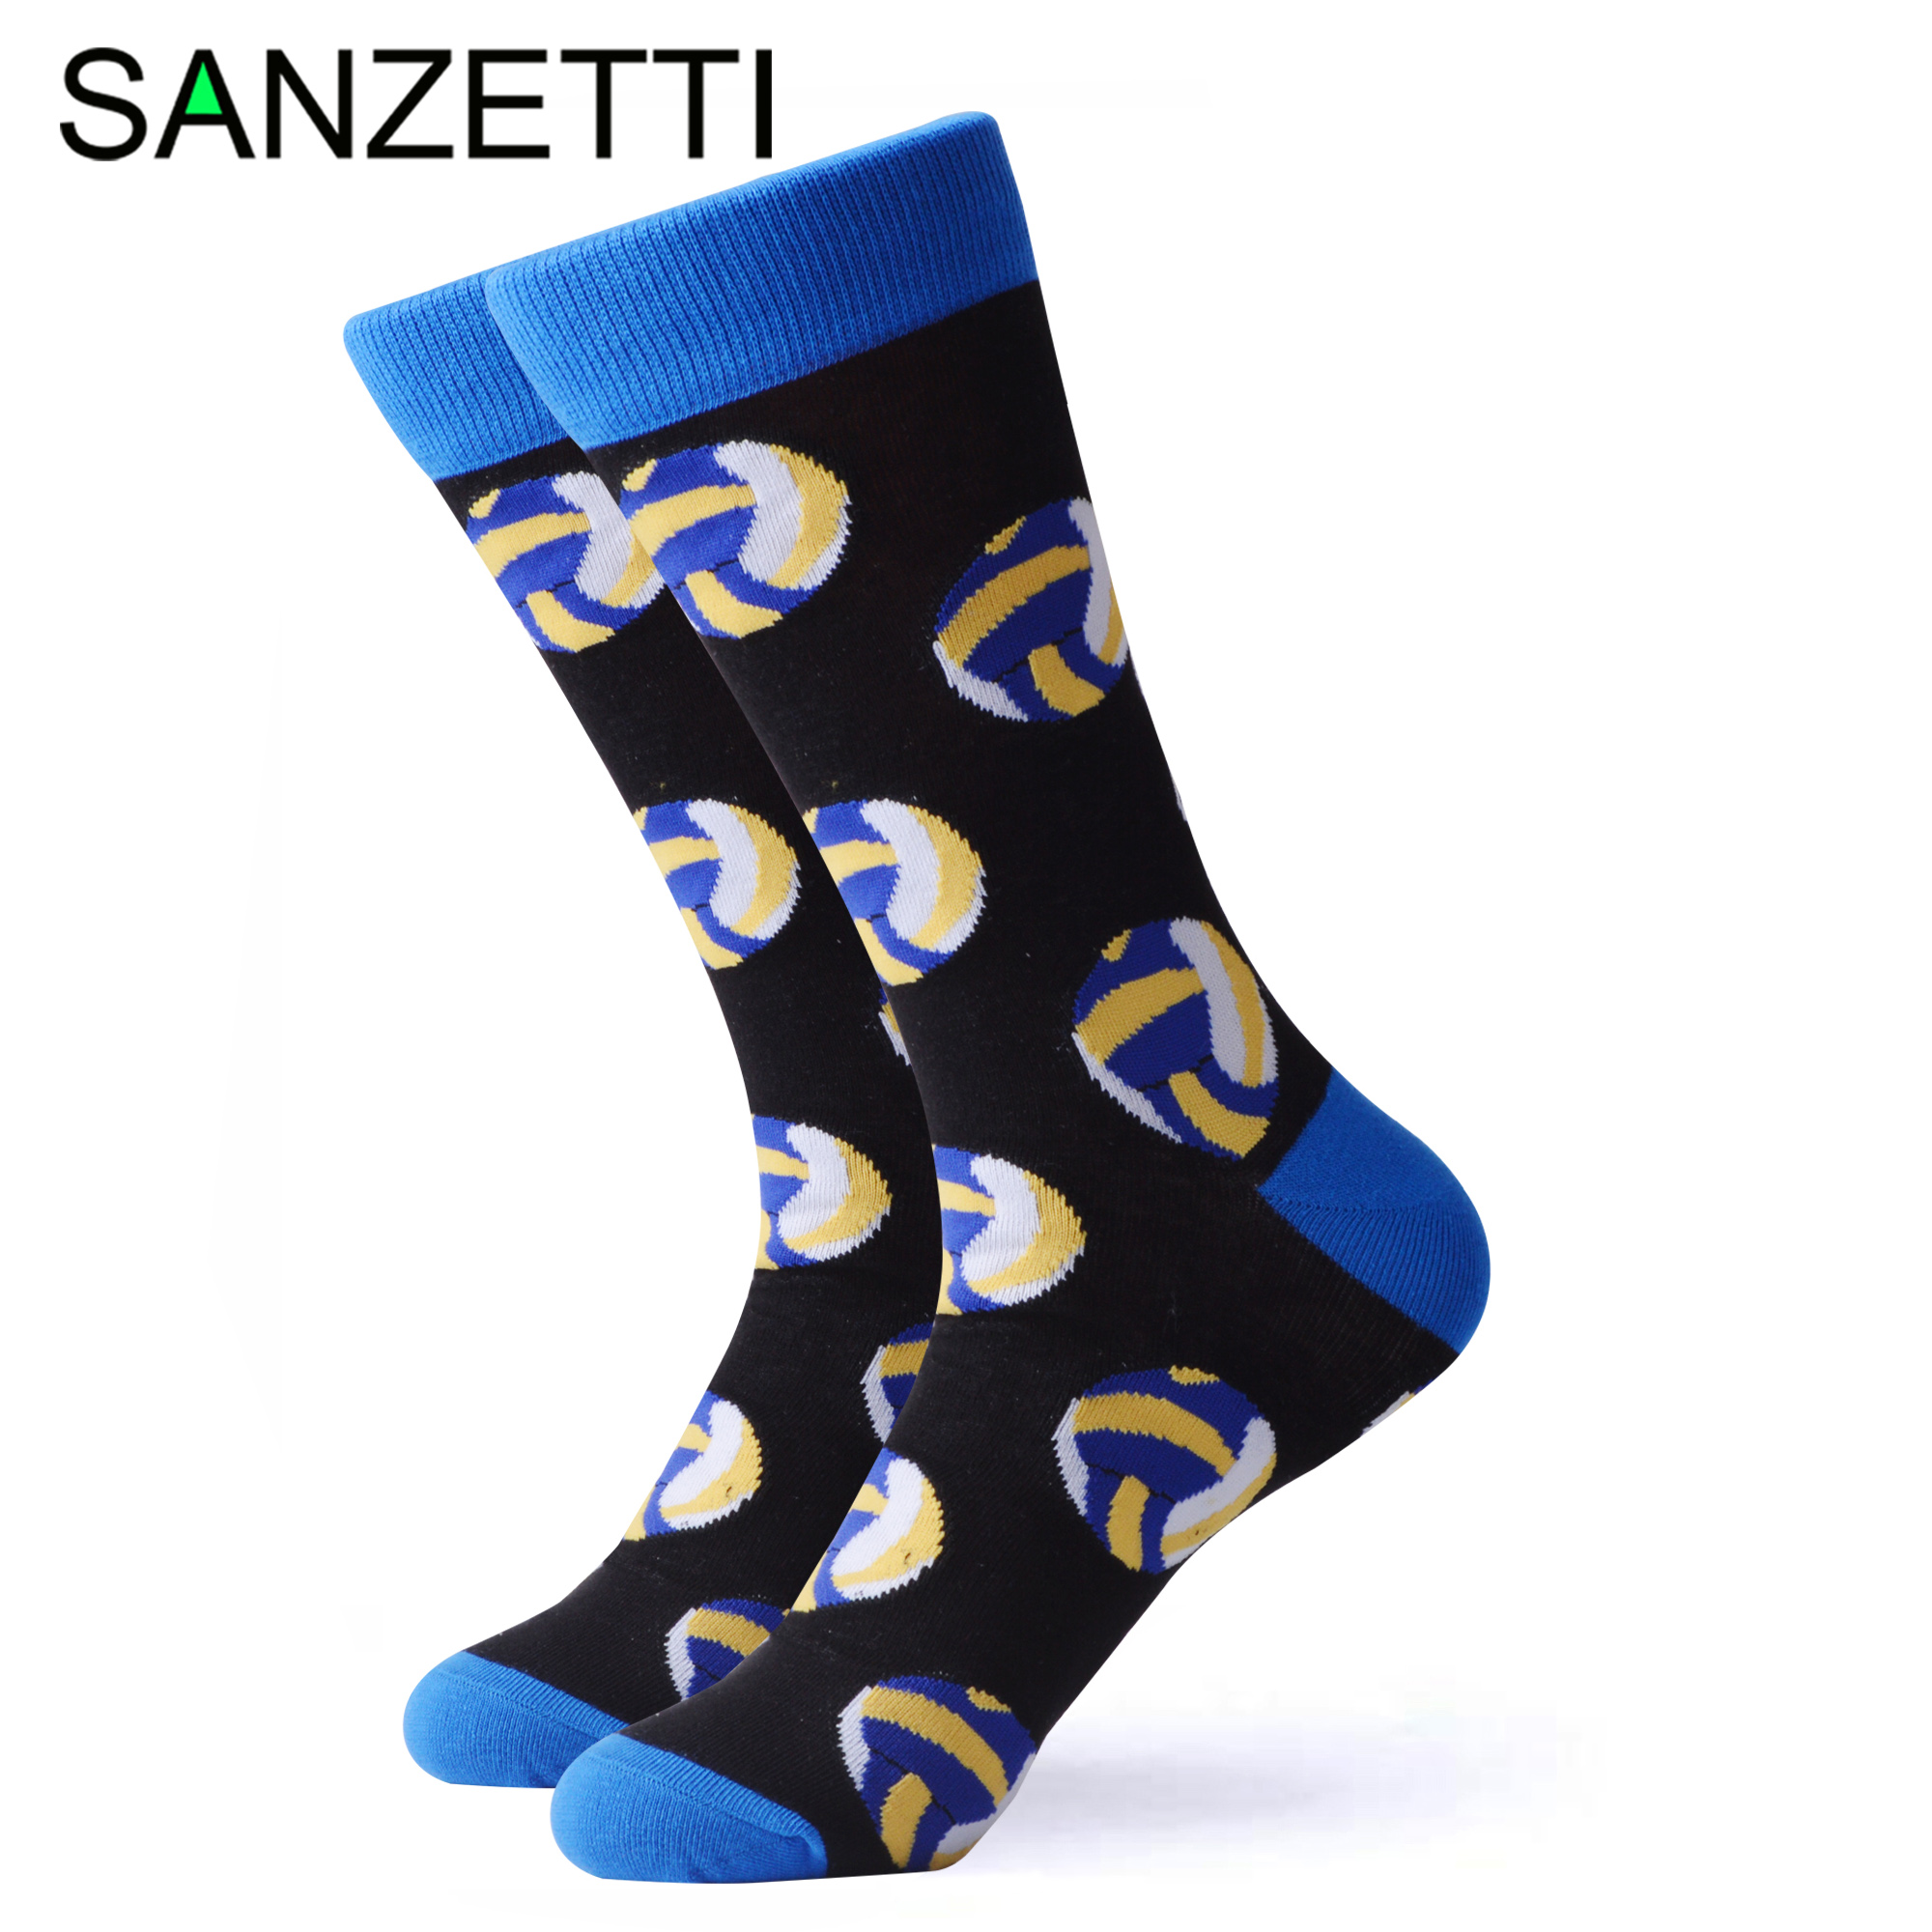 SANZETTI 1 Pair Happy Socks High Quality Men's Colorful Combed Cotton Volleyball Rugby Football Golf Gift Wedding Dress Socks